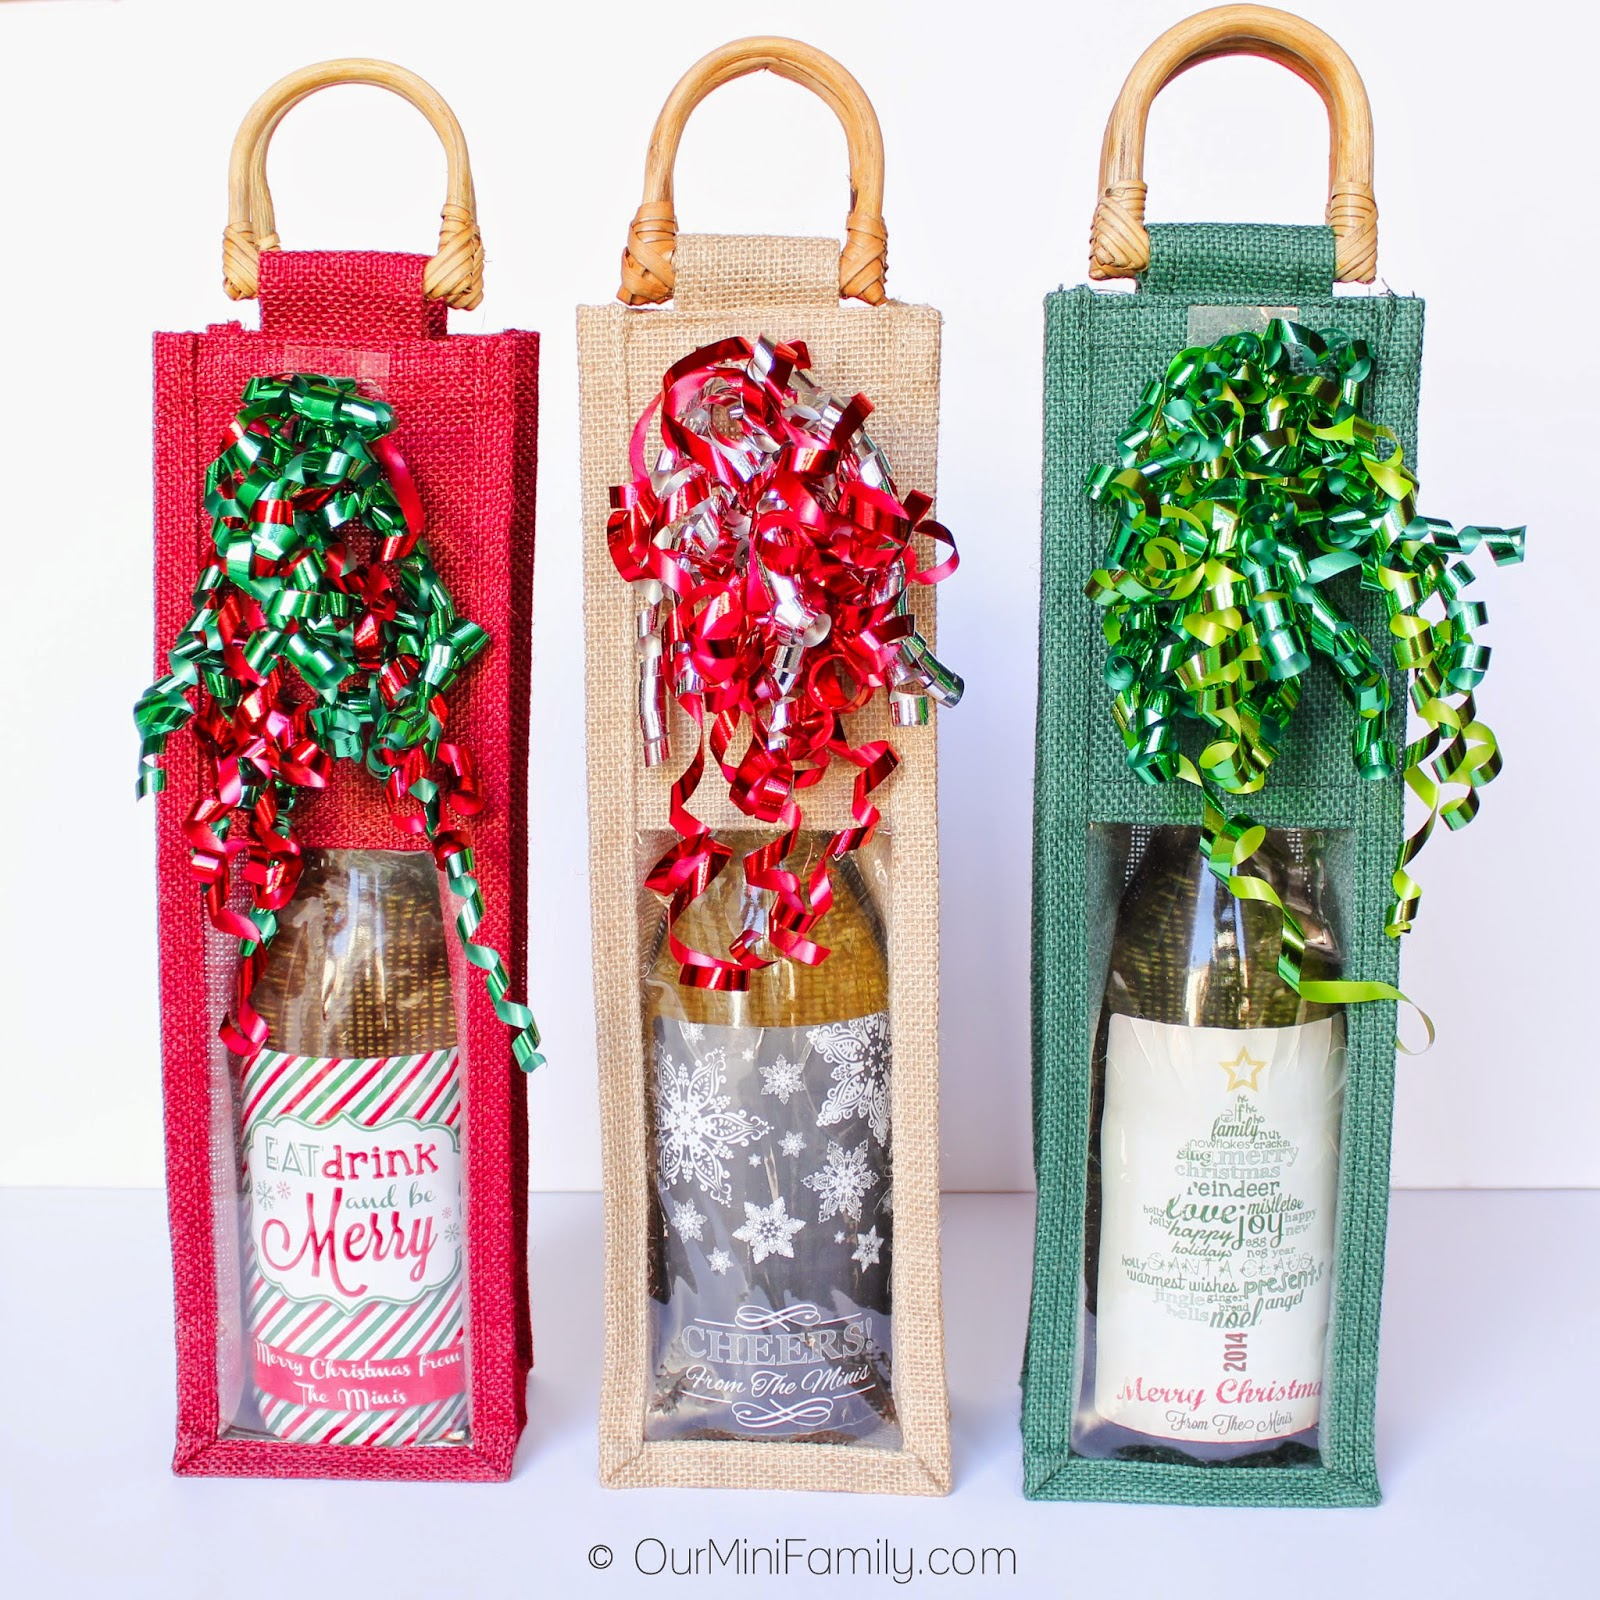 Wine Gifts For Christmas Part - 27: BurlapFabric.comu0027s Clear Window Burlap Wine Bags Are Great If You Want To  Bring Attention To The Label Of The Wine, Champagne, Or Sparkling Cider You  Bring ...